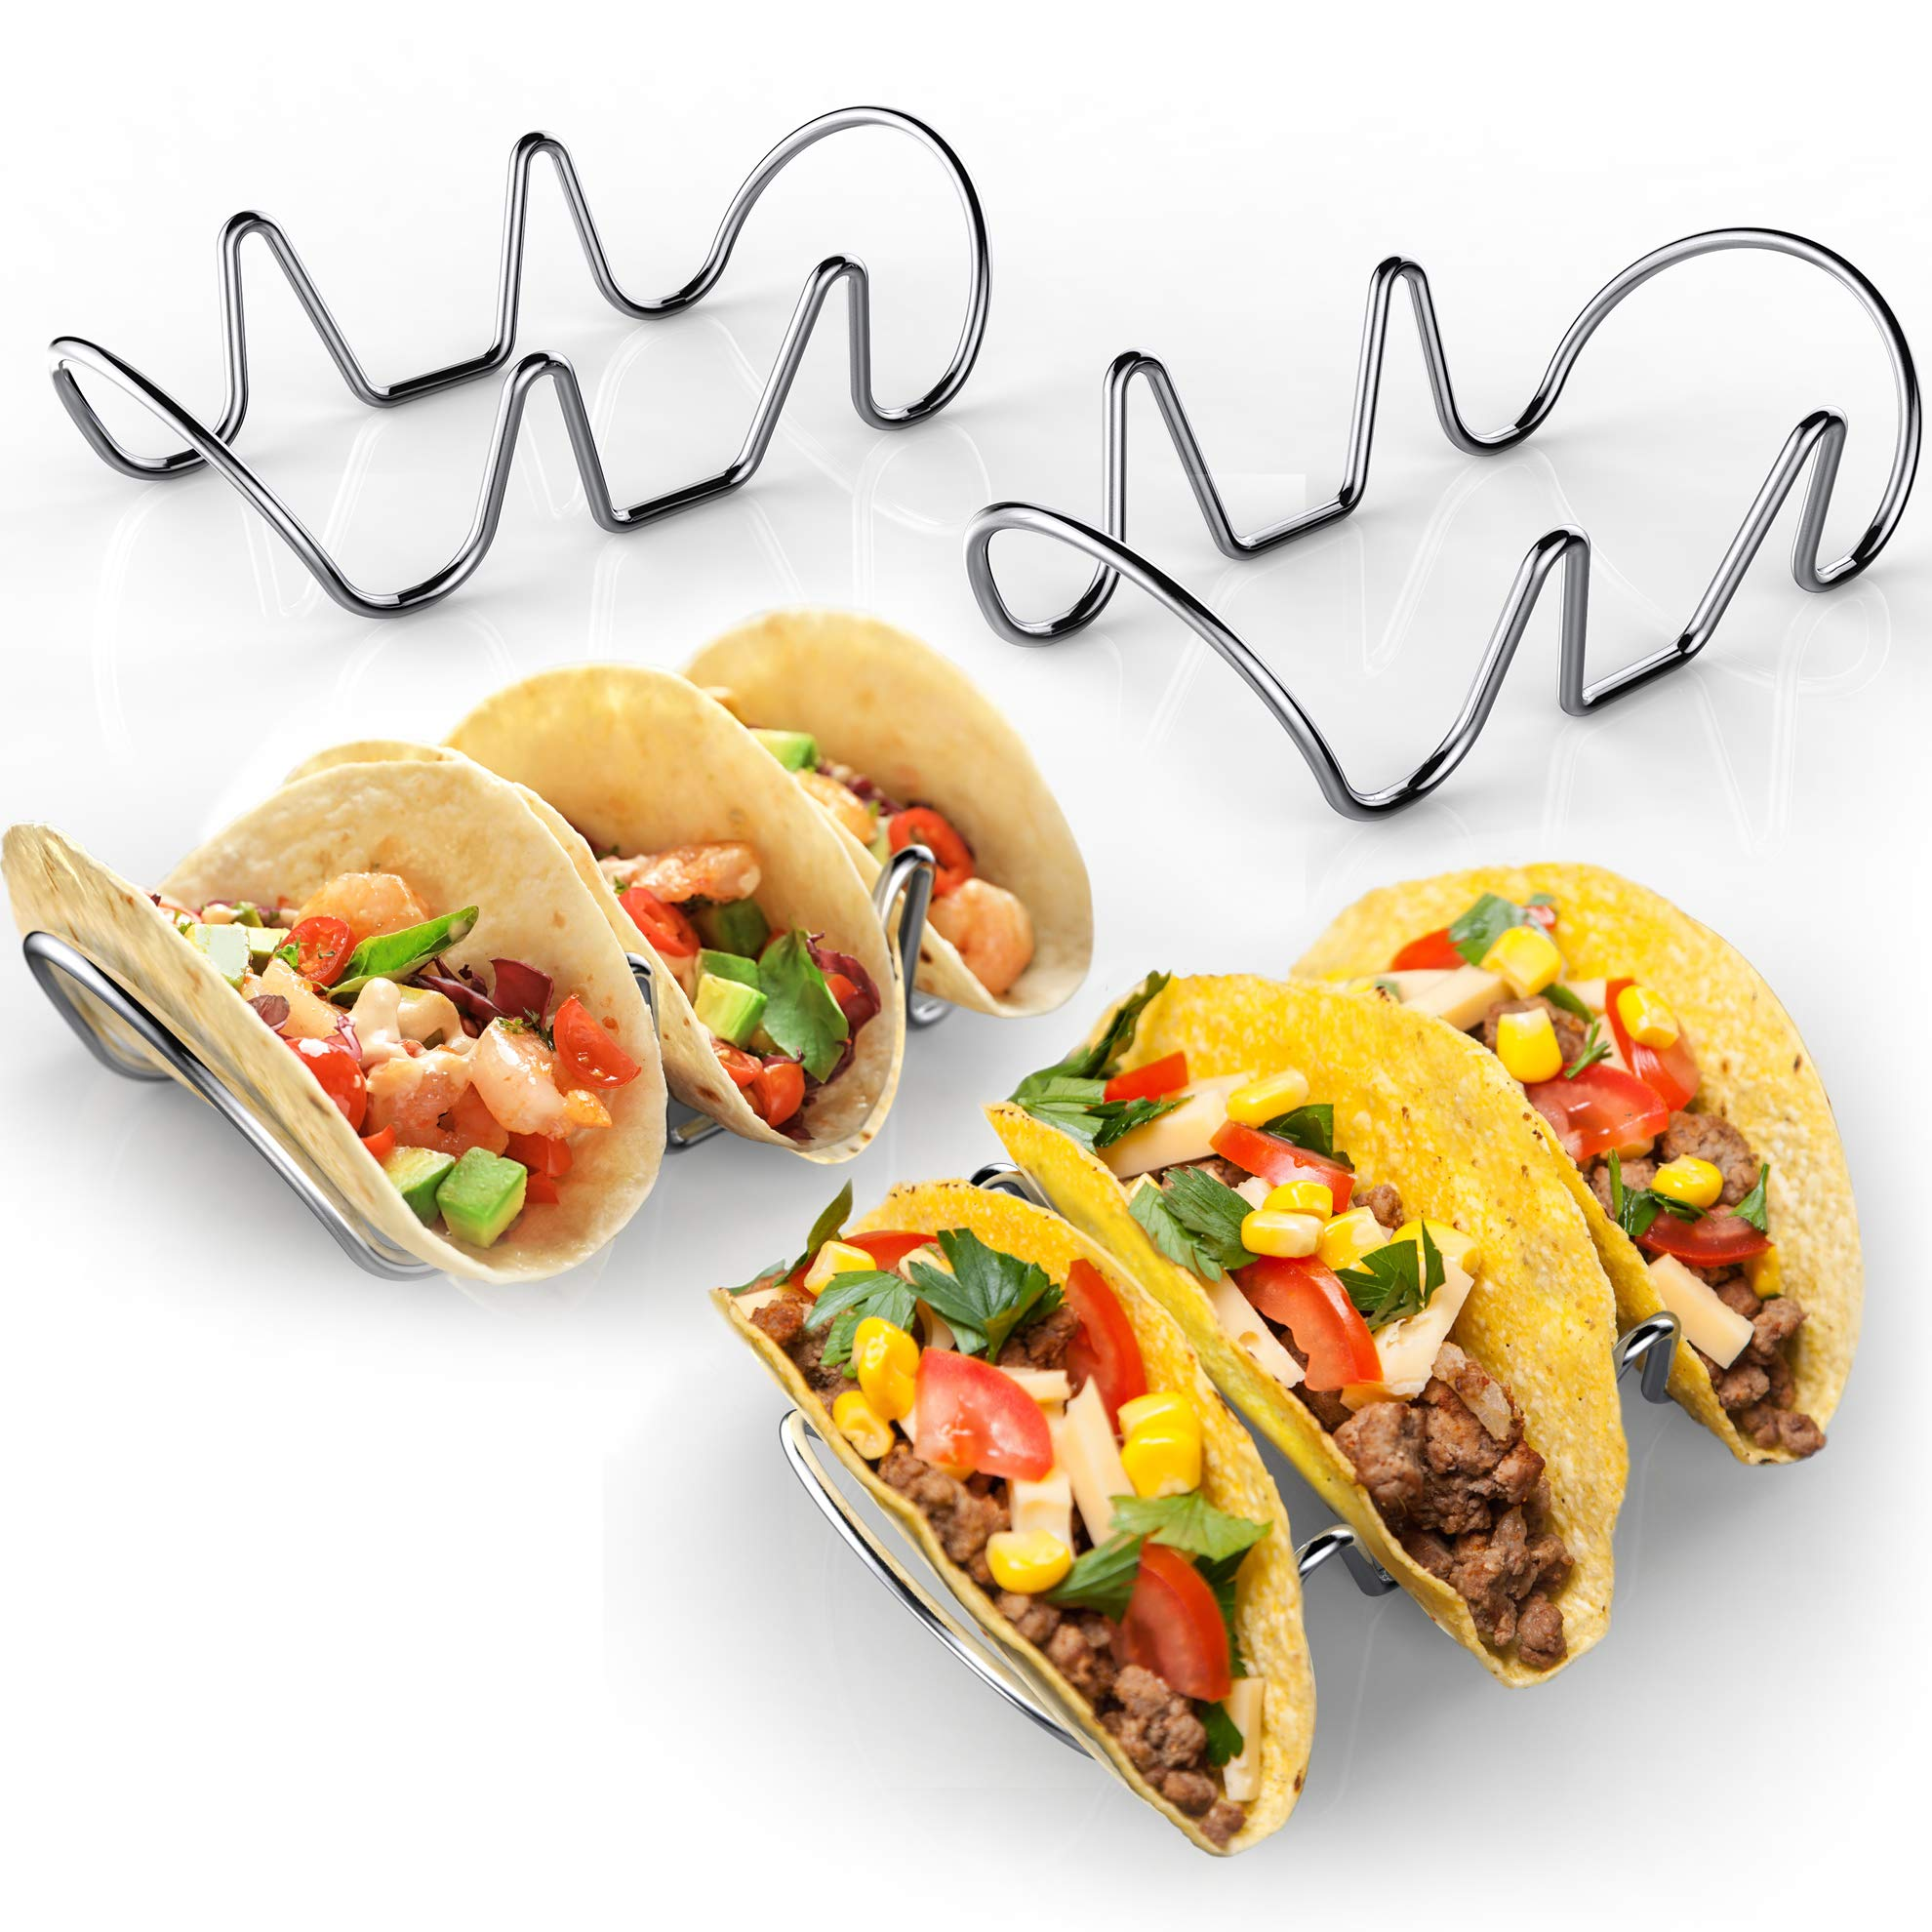 Premium Taco Holders - 4 Pack Stainless Steel Taco Stands (Holds 12 Tacos) - Oven & Dishwasher Safe Stackable Trays - Racks Hold Soft & Hard Shell Tacos